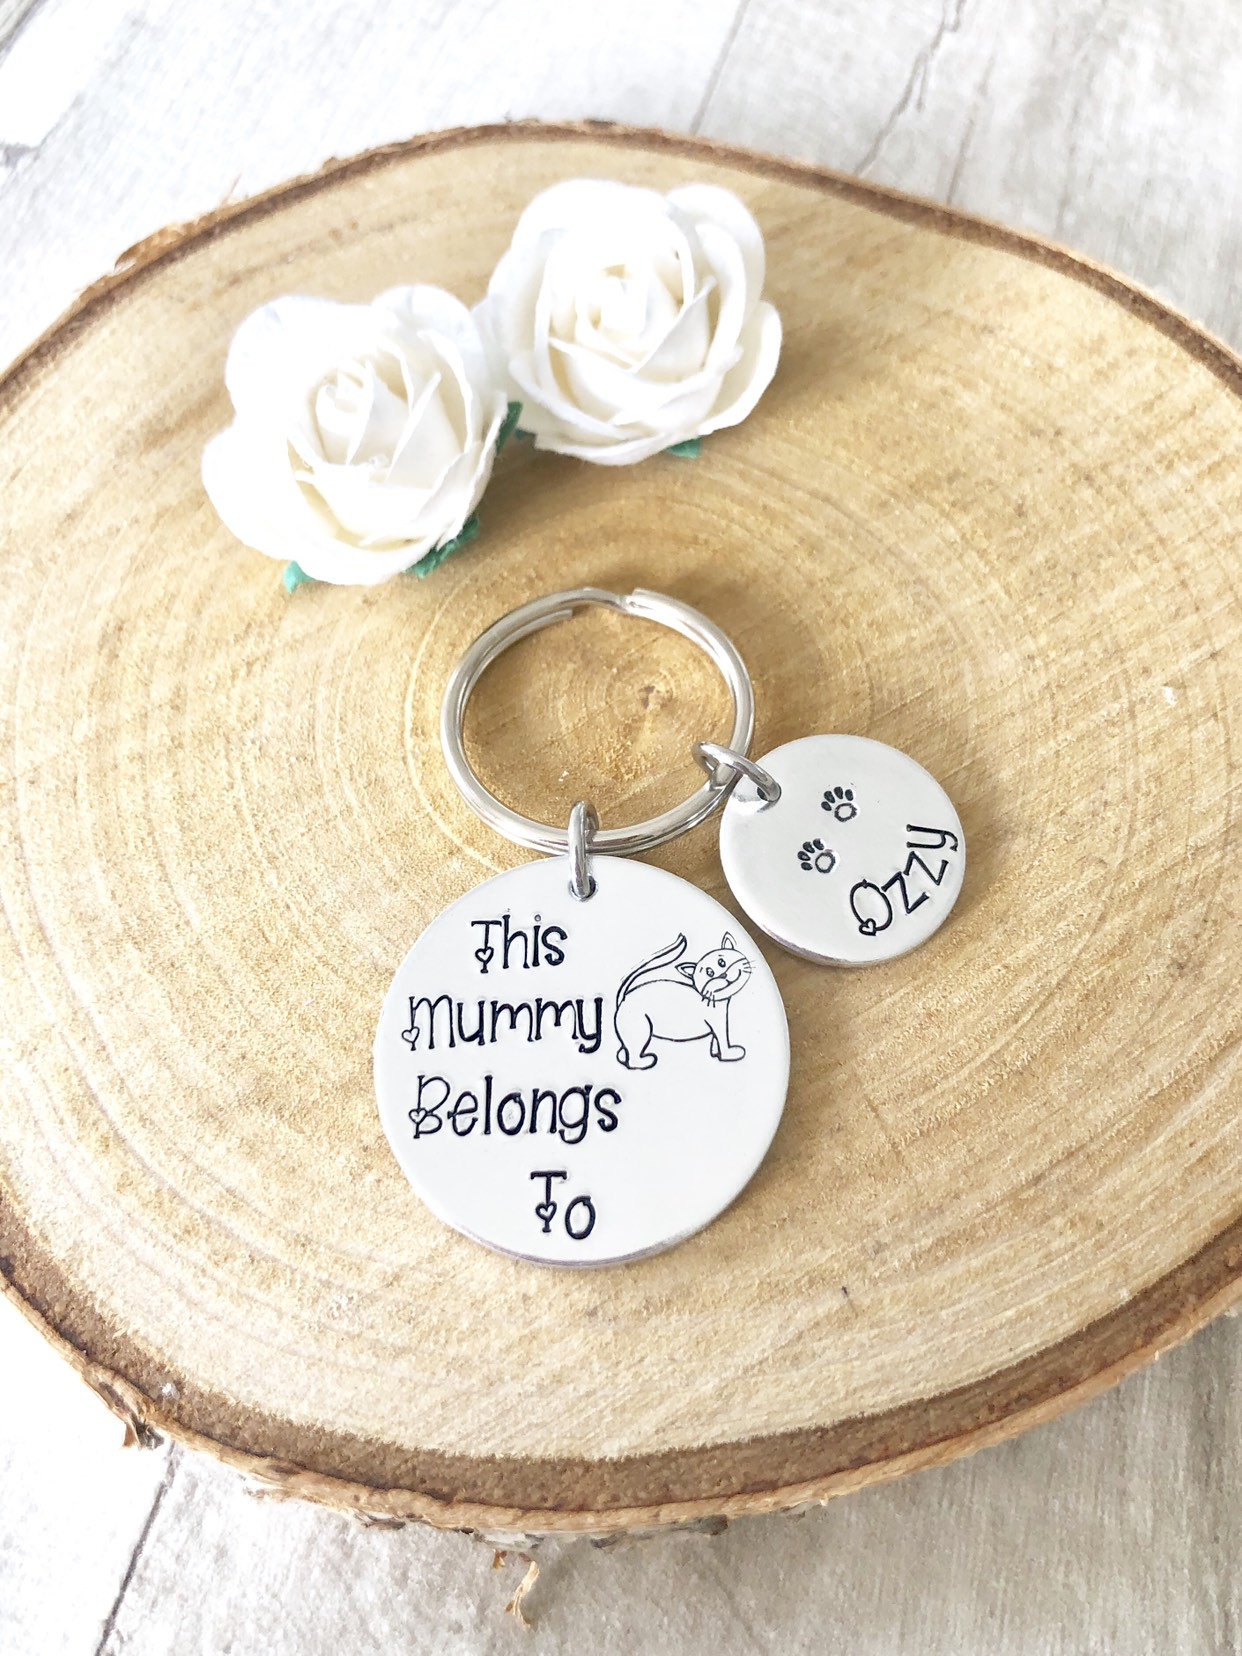 Cat Lover Gift, Cat Mom, Cat Mum, Crazy Cat Lady, Gifts for Pet Lover, Pet Lover, Personalized Pet, Personalised Pet, Animal Lover, Pet GIft